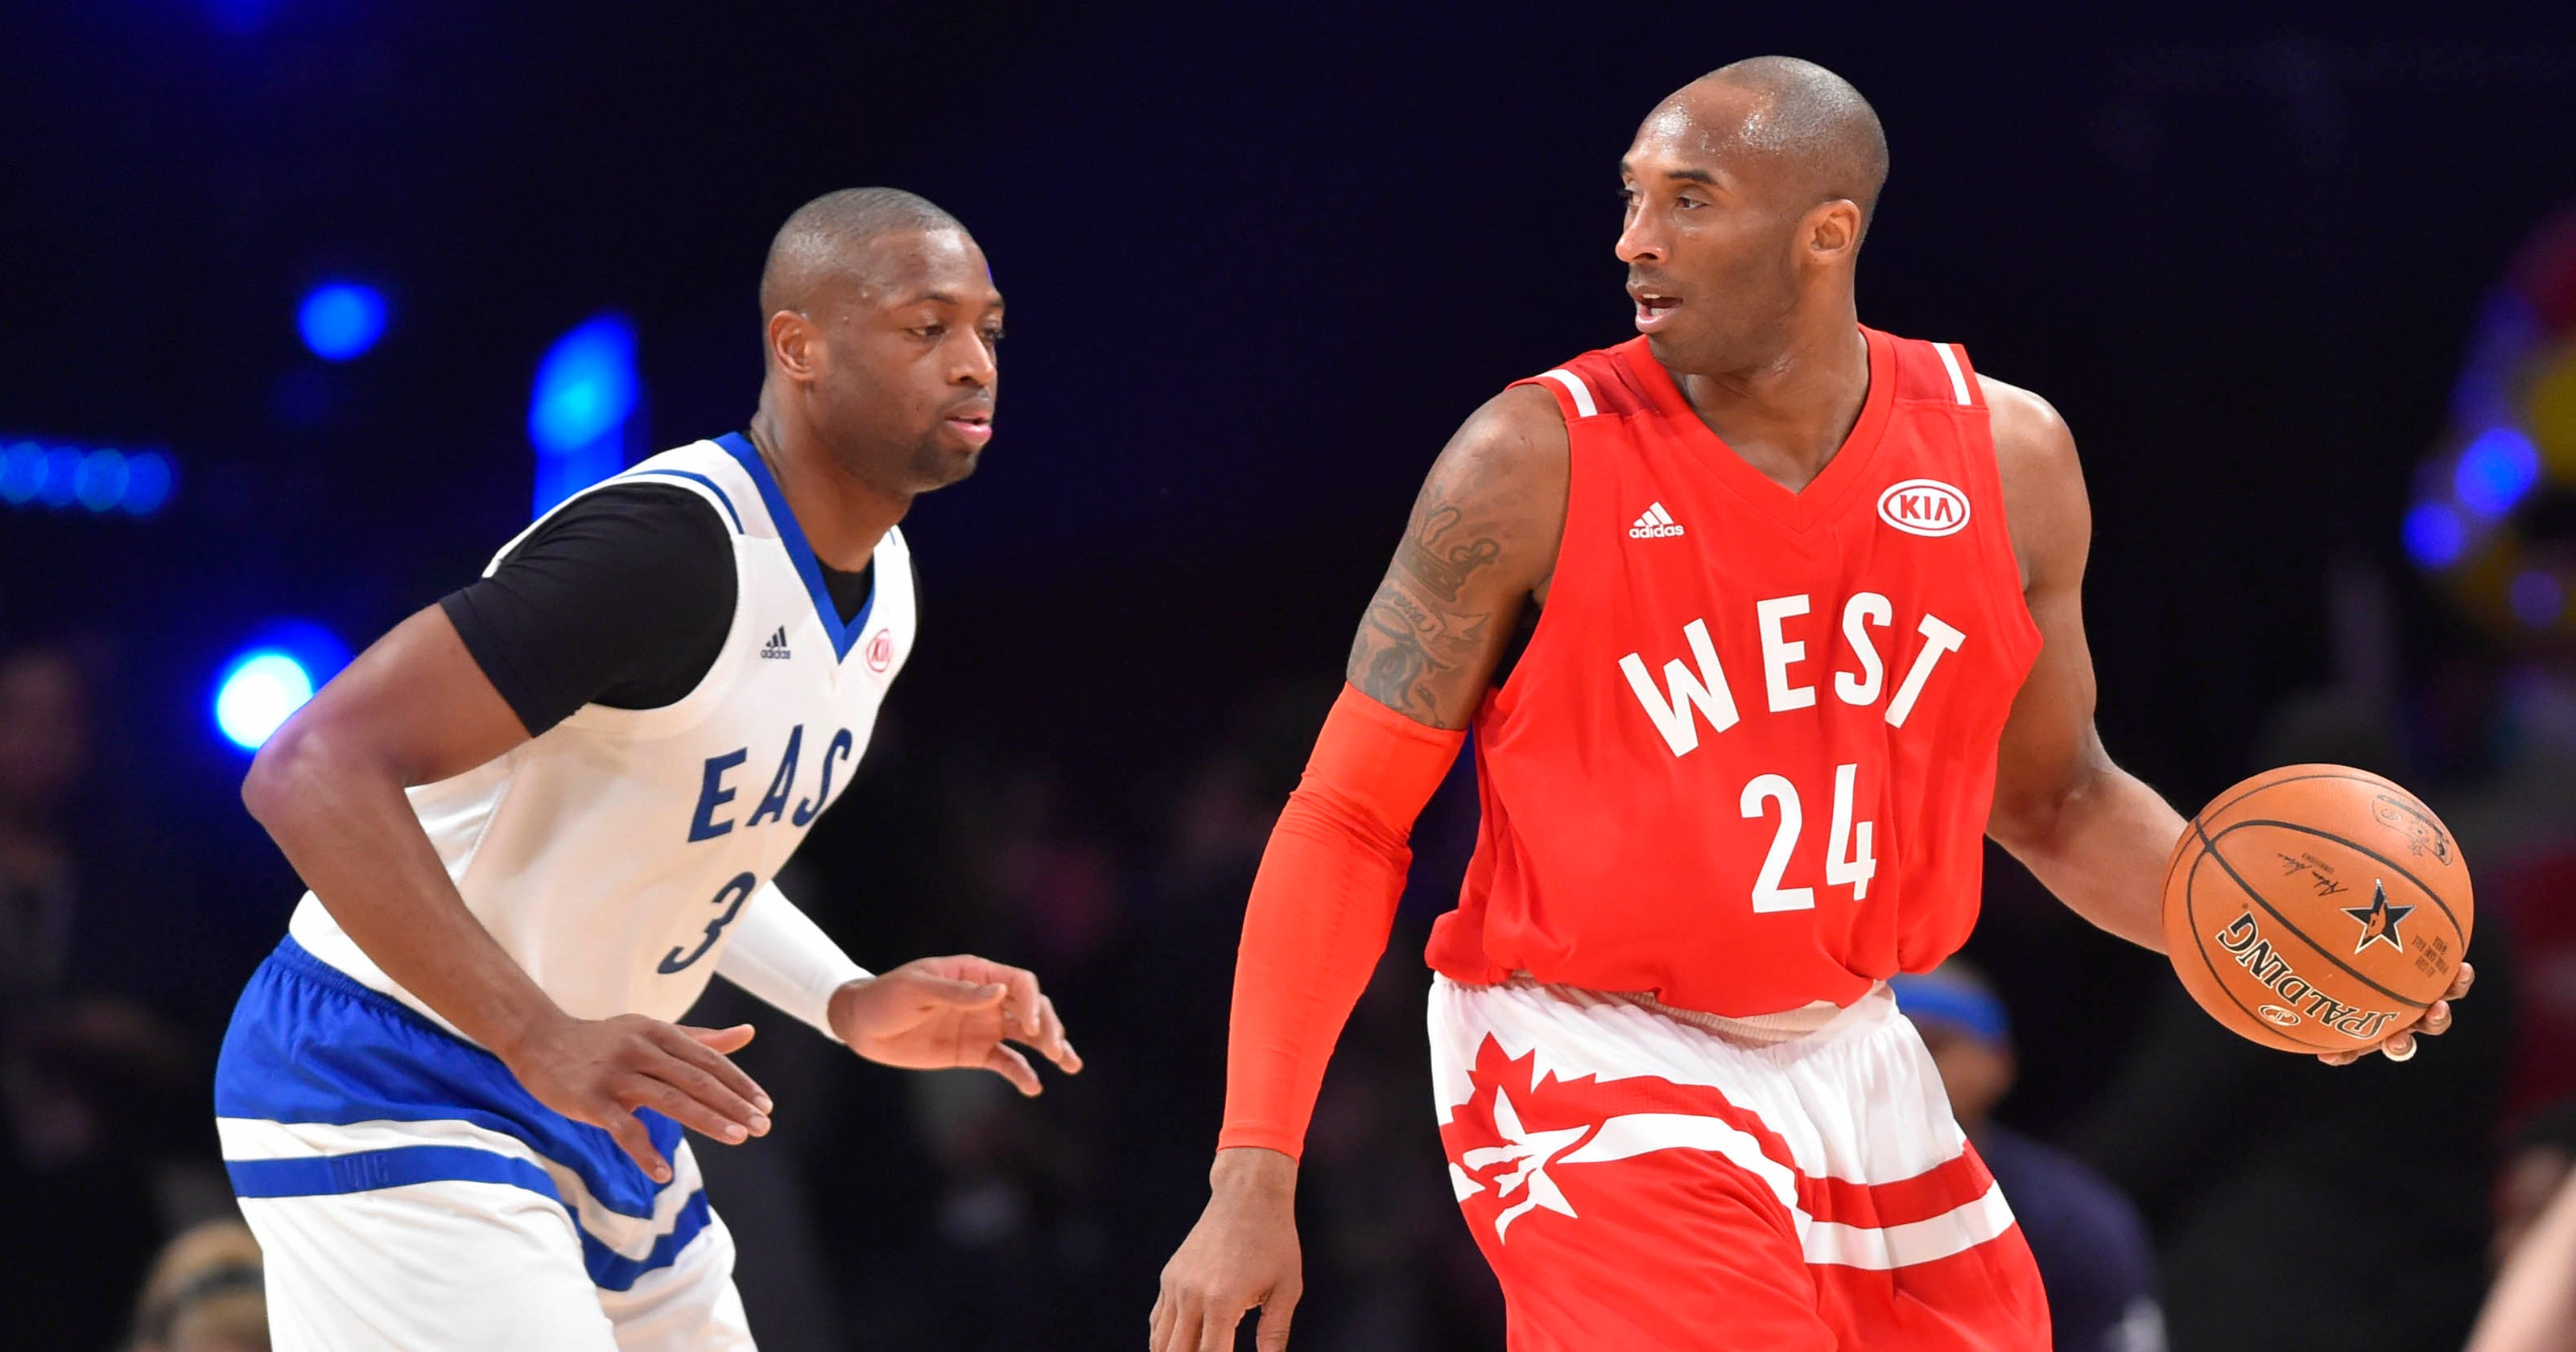 bfcec179f315 Kobe Bryant reflects on his career following final All-Star Game